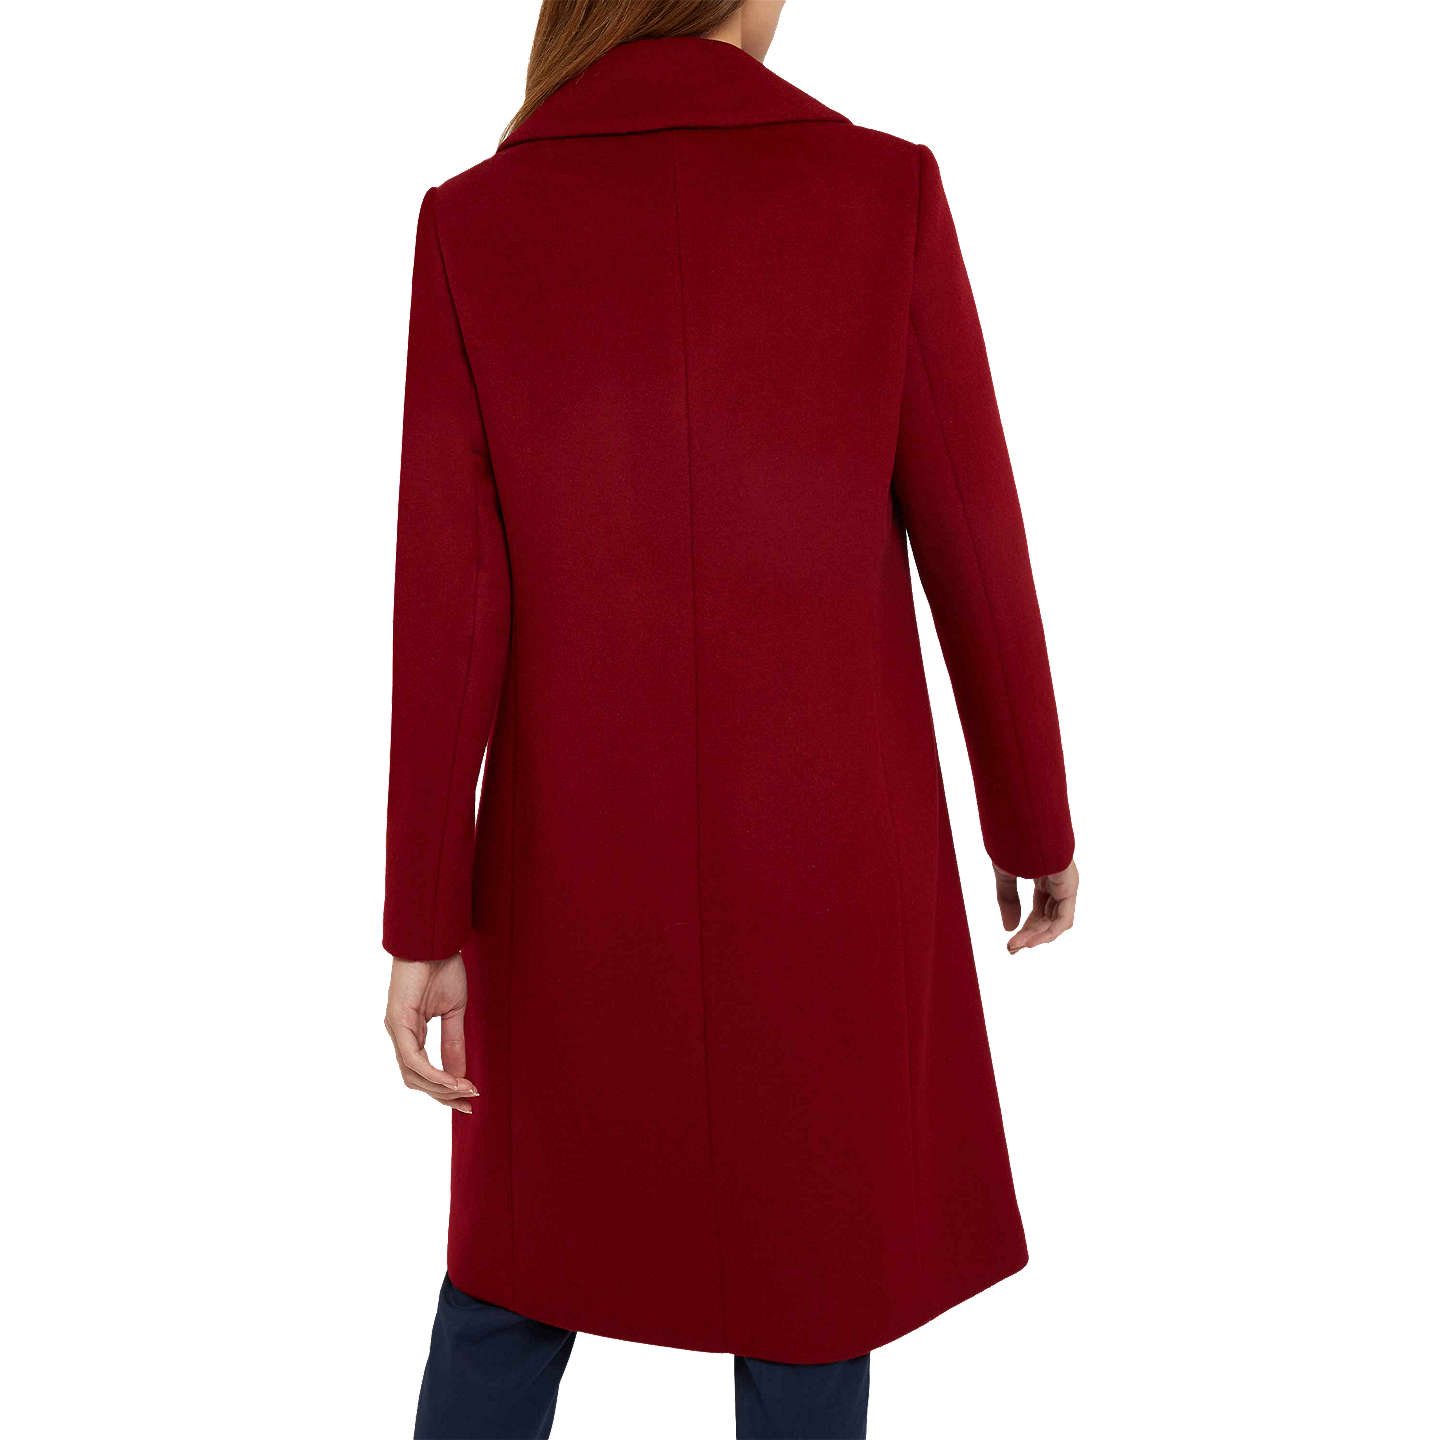 BuyJaeger A-Line Wool Coat, Burgundy, 14 Online at johnlewis.com